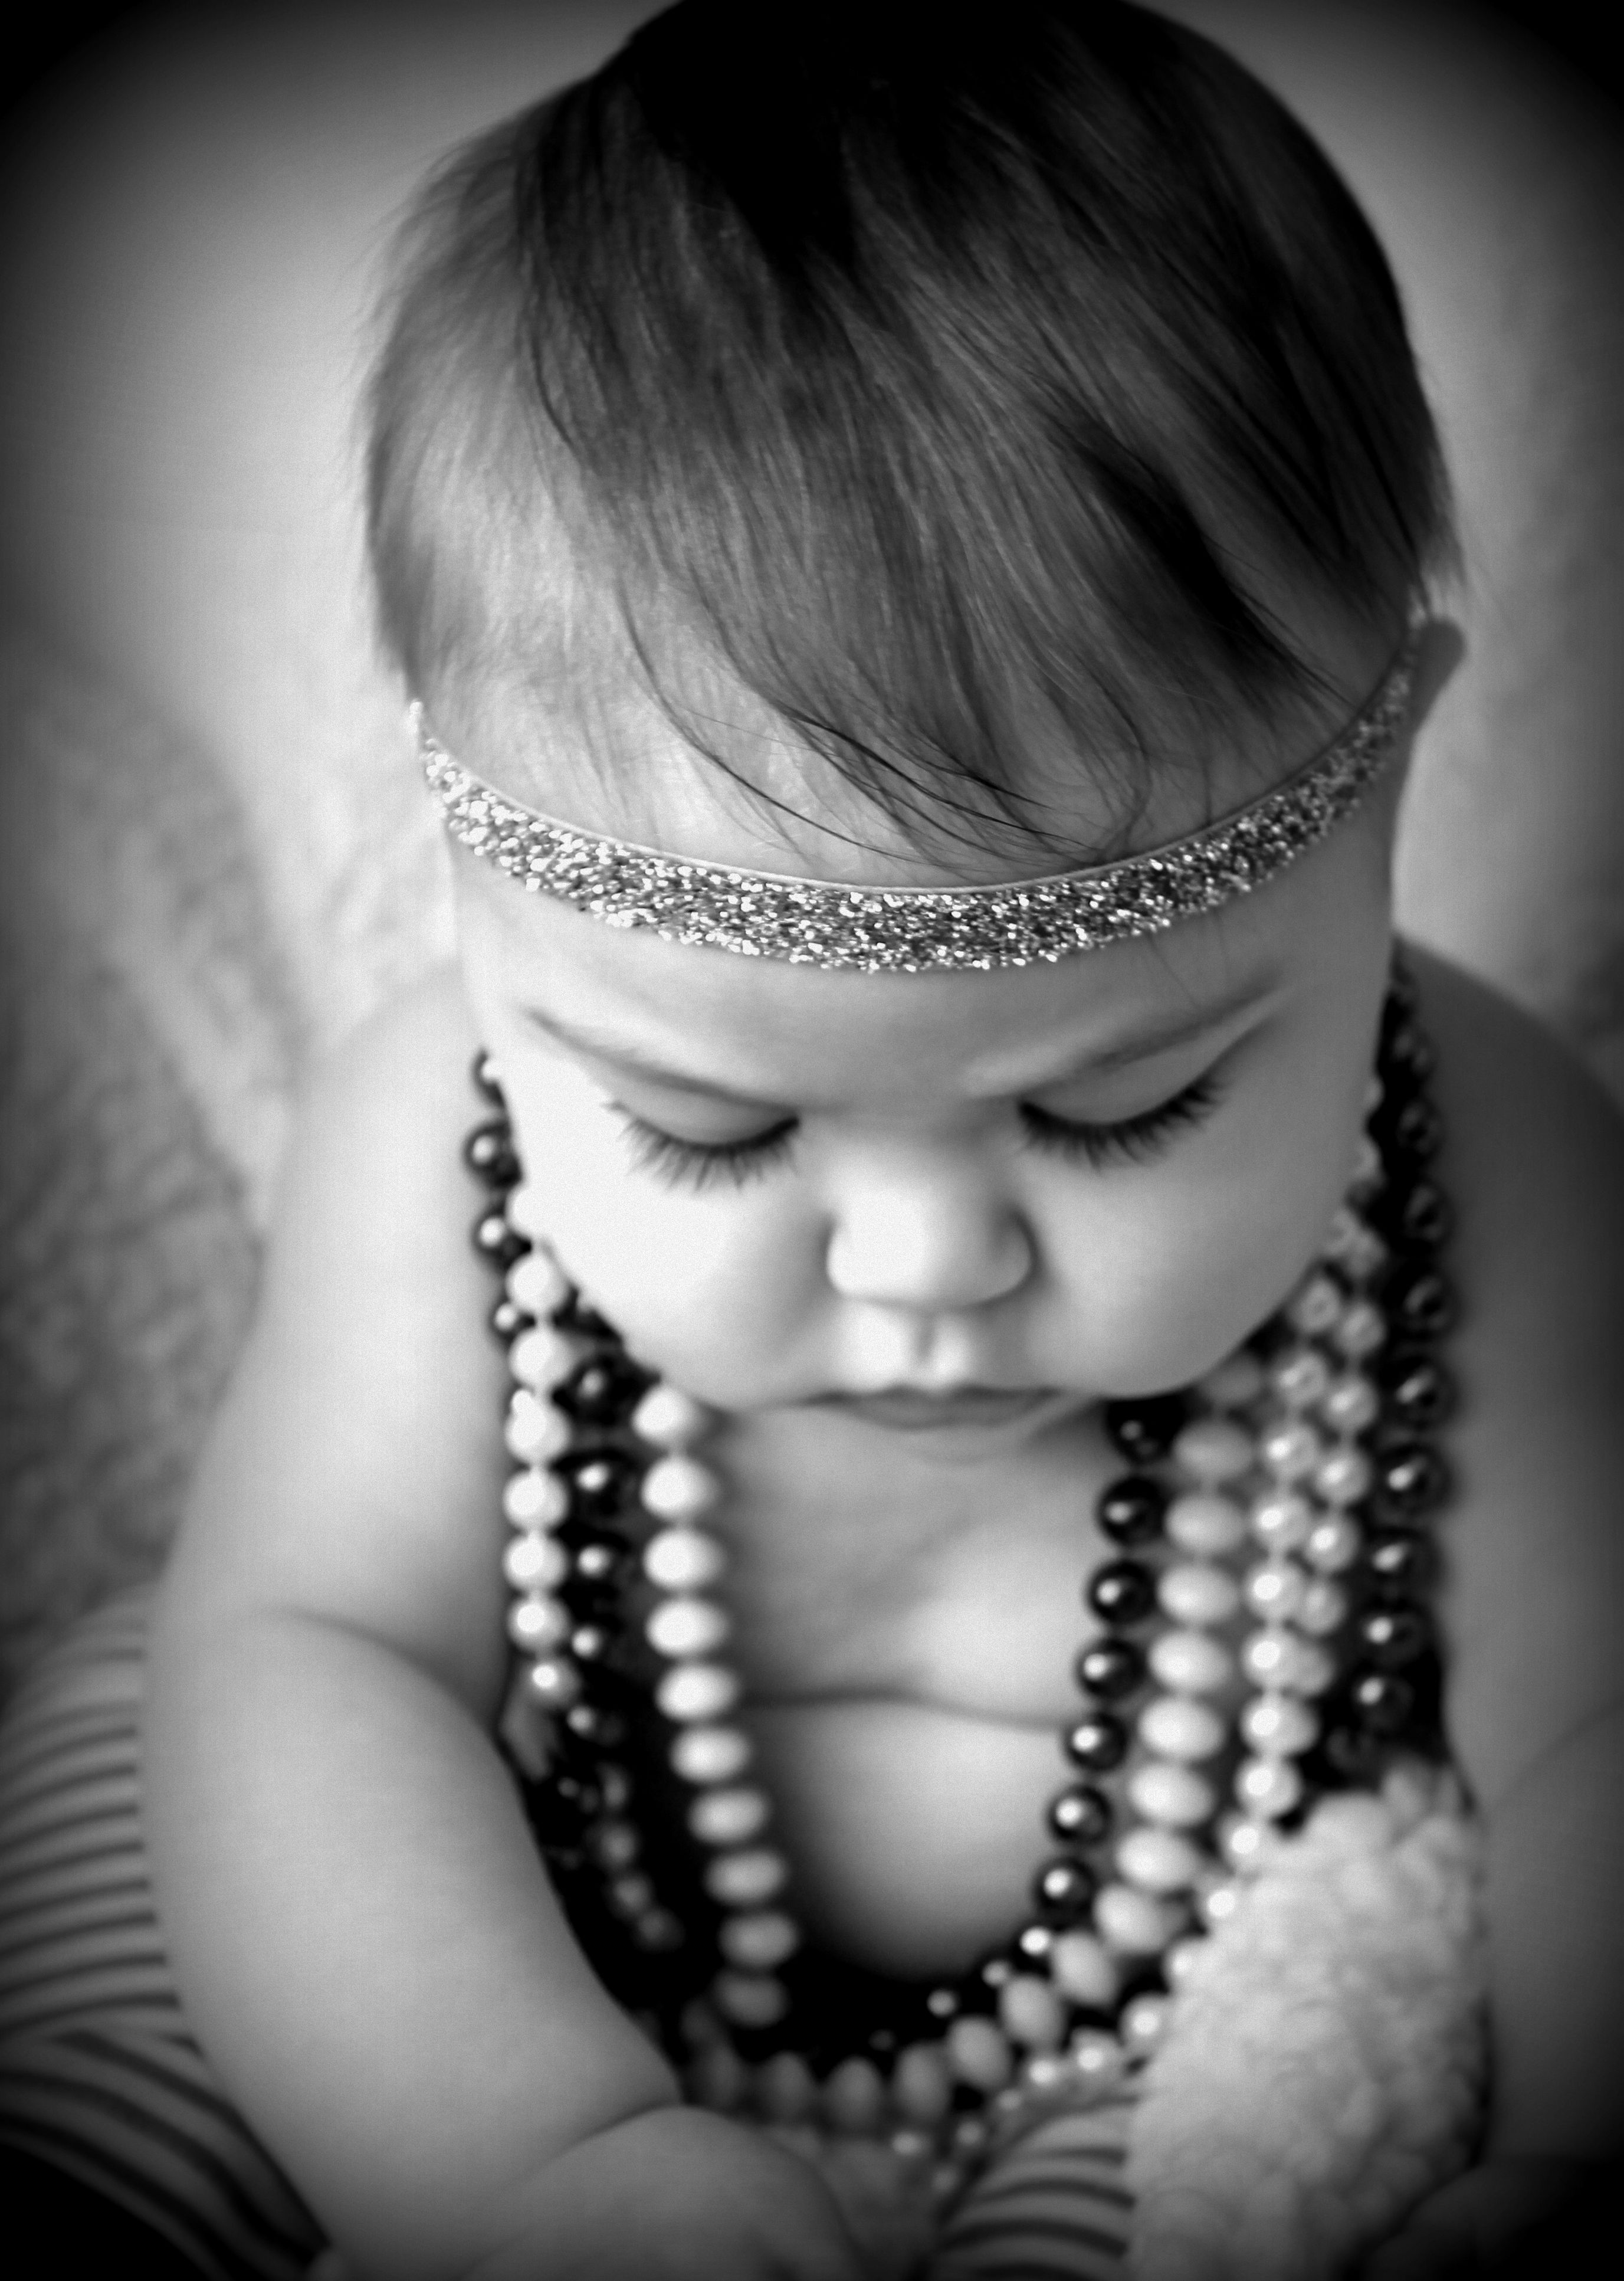 Retro Glam Baby Girl Cutie Adorable Photography Ideas Pretty Chunky Mom N Bab Blouse Layla White Size 3t Babies 5 Months Old Cute Princess Pictures Black And Necklace Headband Sparkle